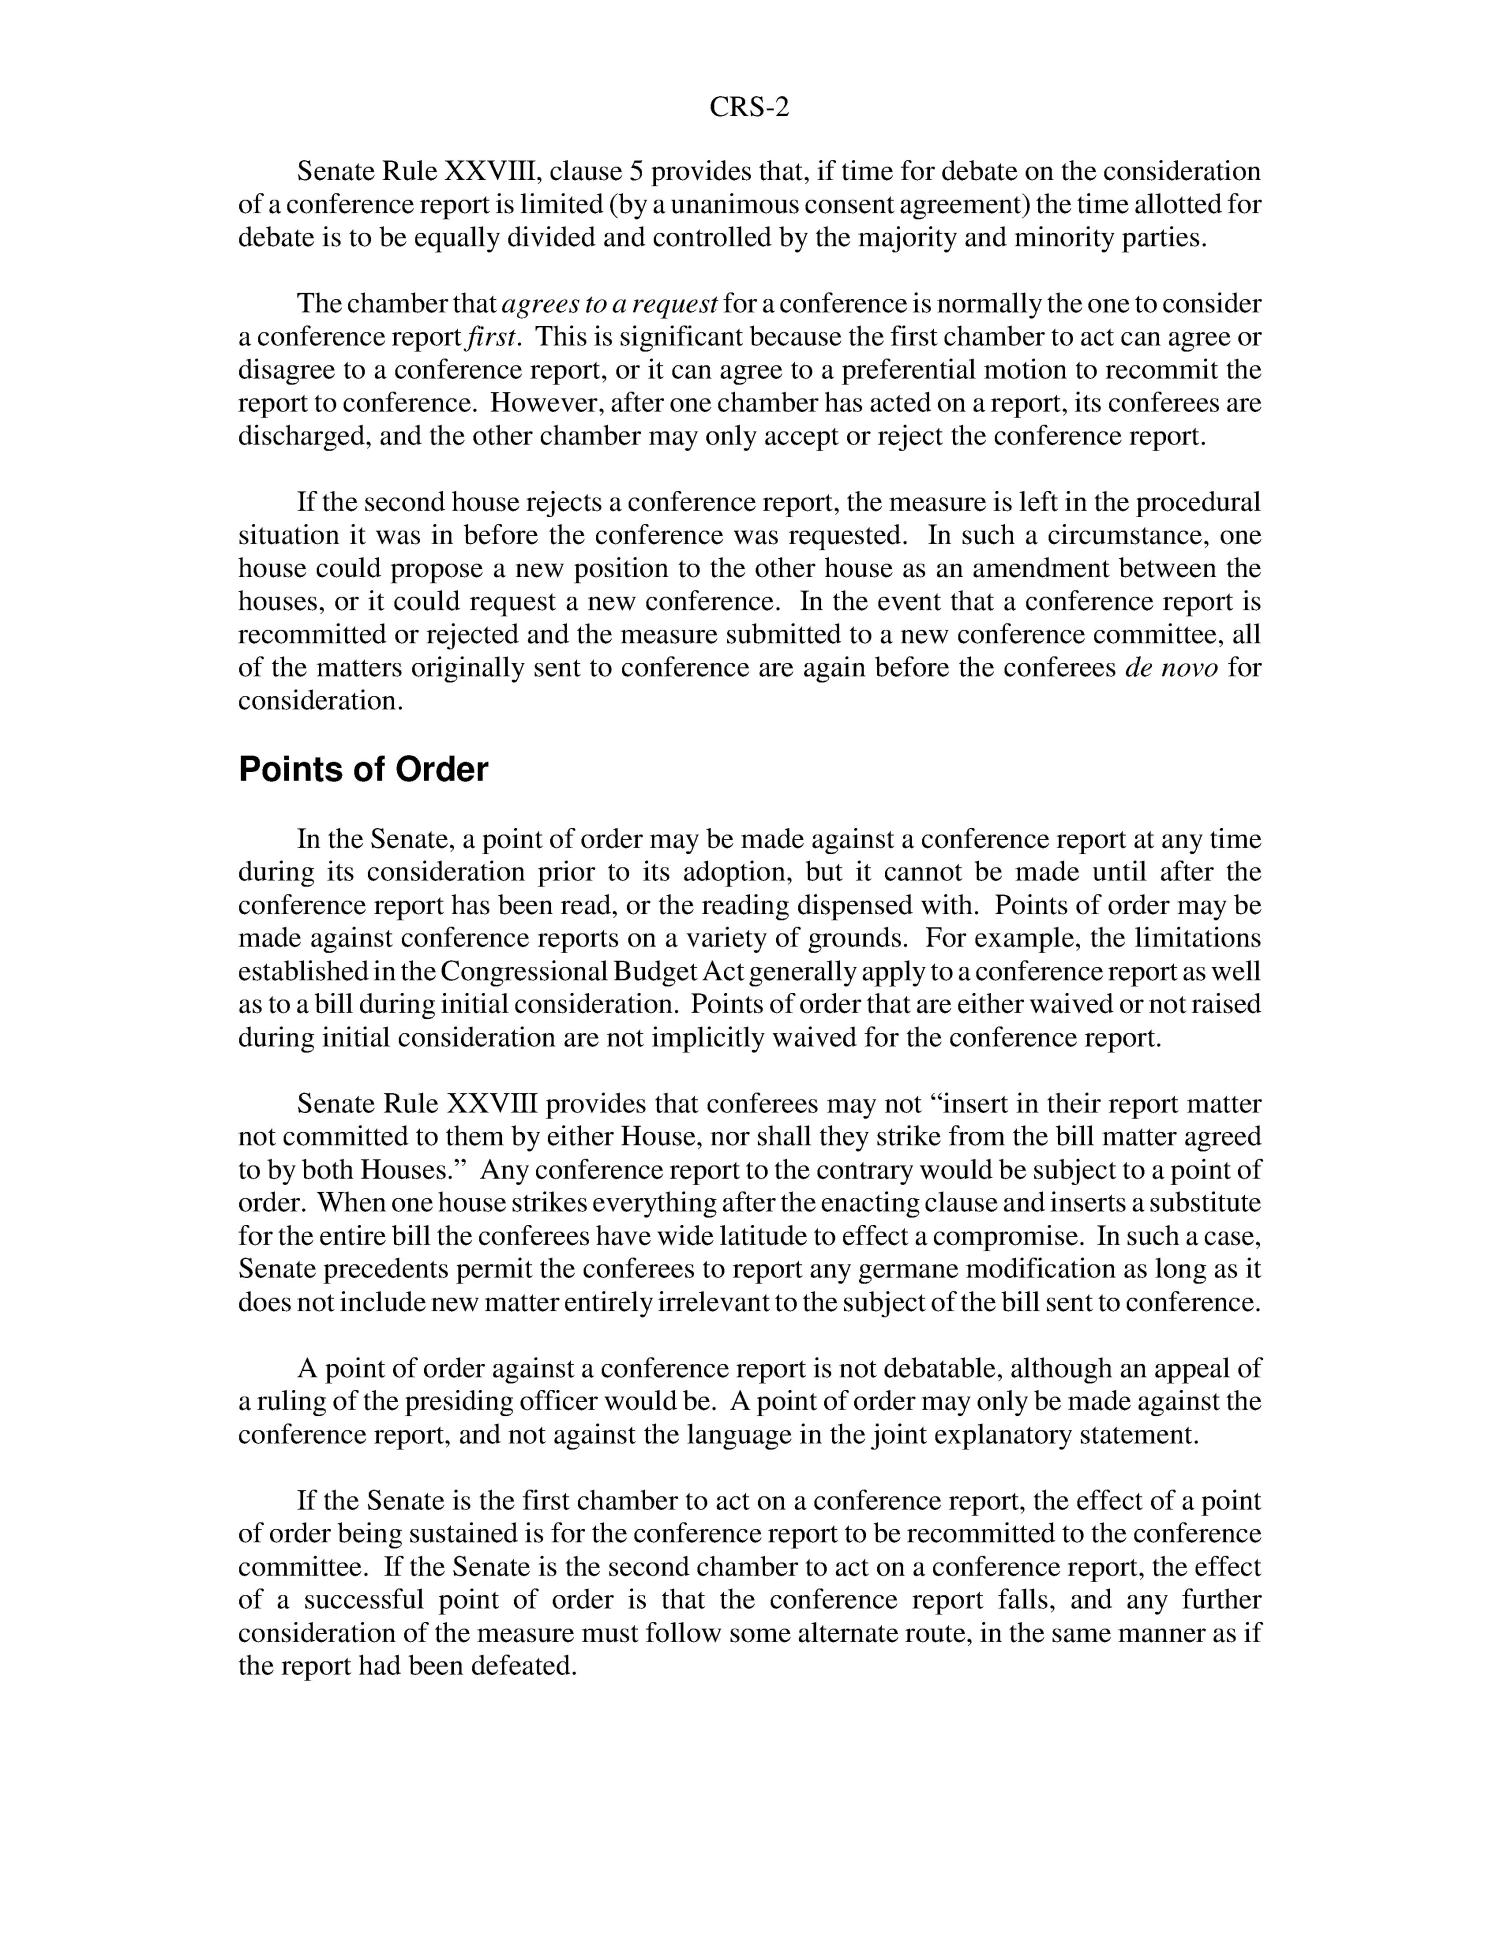 Floor Consideration Of Conference Reports In The Senate Page 2